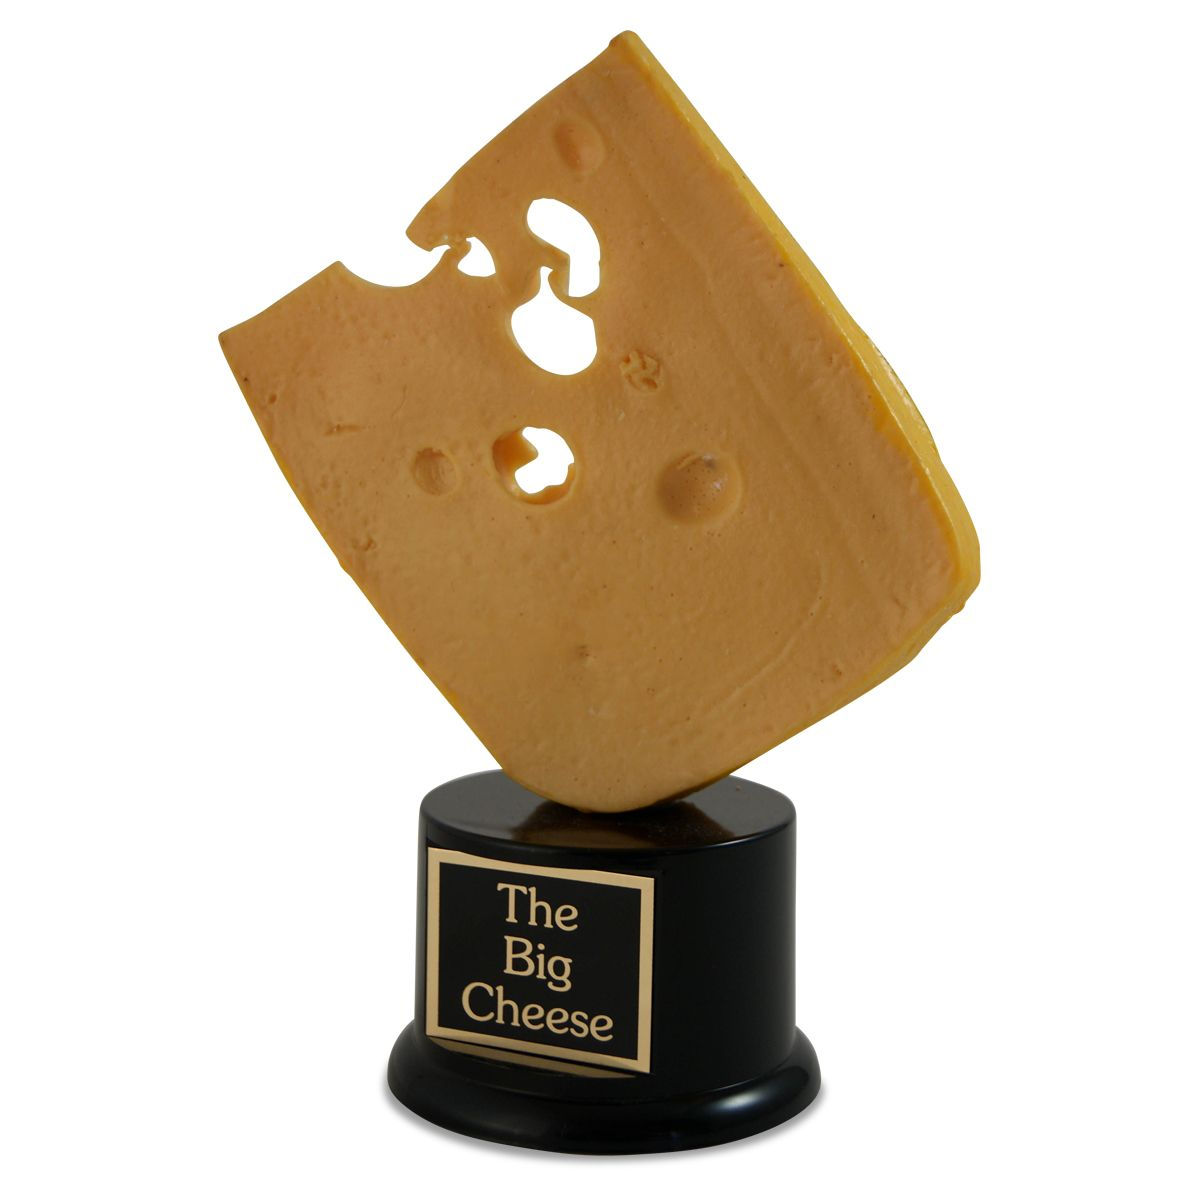 If You Are Looking For A Unusual Business Trophy Idea Why Not Give This Hilarious Cheese Trophy To The Big Che Cheese Lover Gifts Funny Trophies Cheesy Gifts